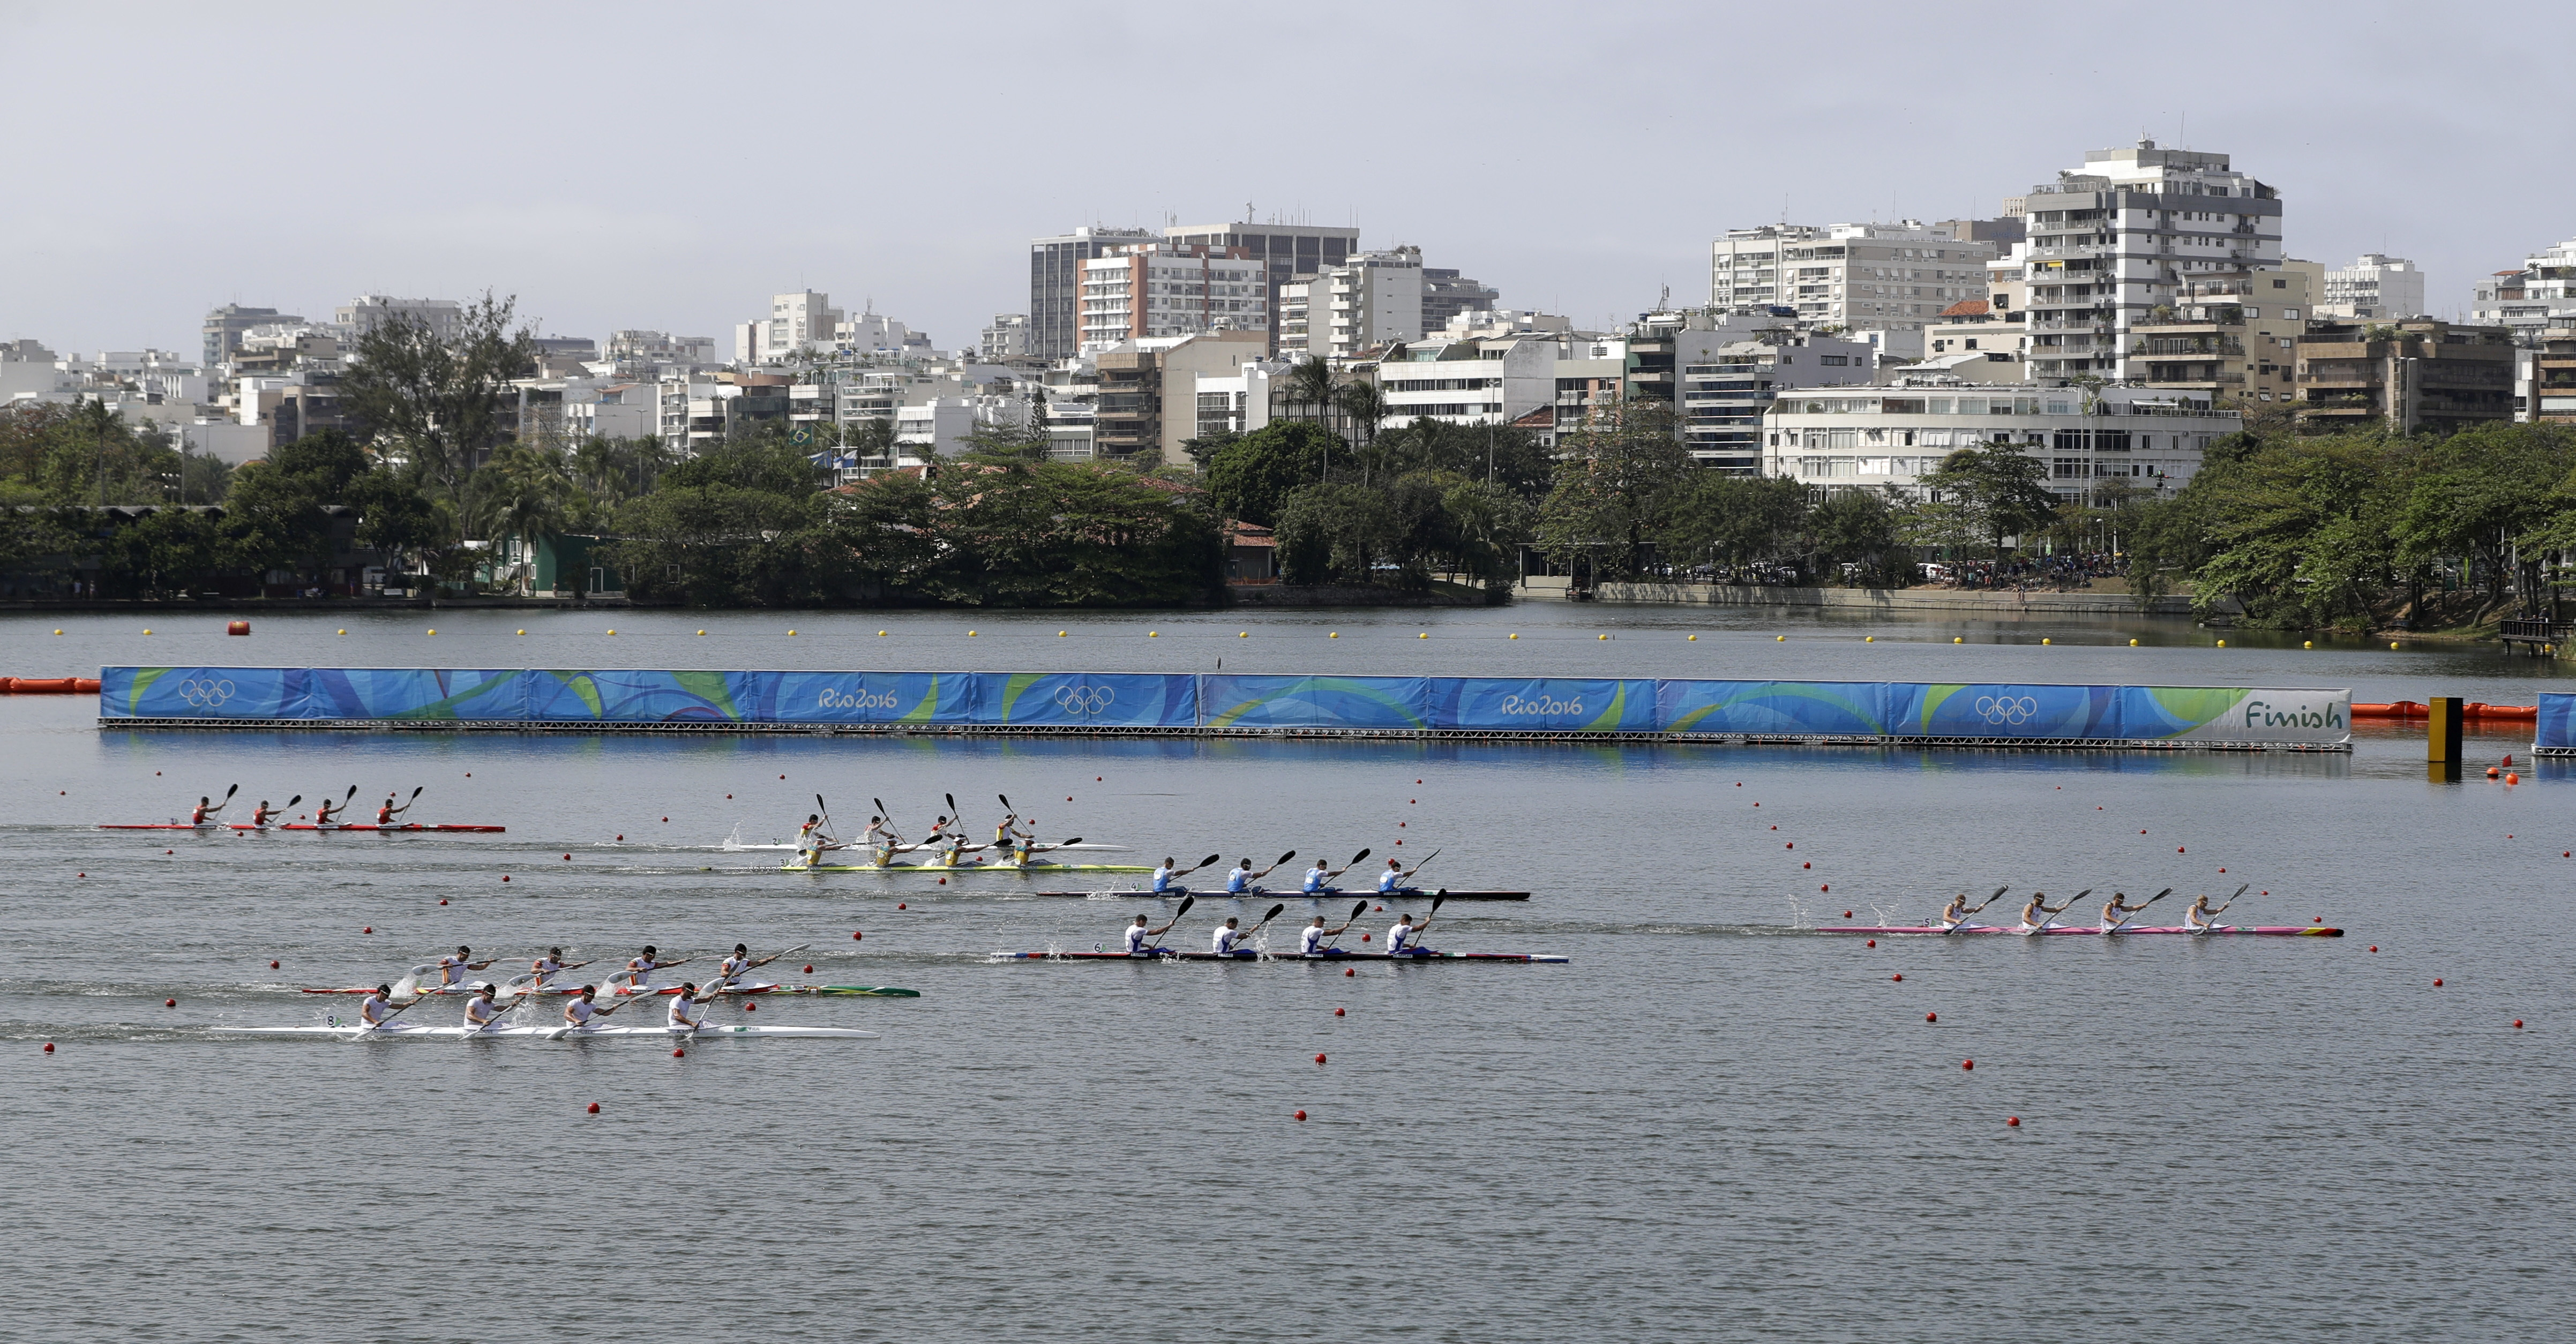 Germany's Max Rendschmidt, Tom Liebscher, Max Hoff and Marcus Gross, far right, paddle for gold in the men's kayak four 1000m final during the 2016 Summer Olympics in Rio de Janeiro, Brazil, Saturday, Aug. 20, 2016. (AP Photo/Darron Cummings)